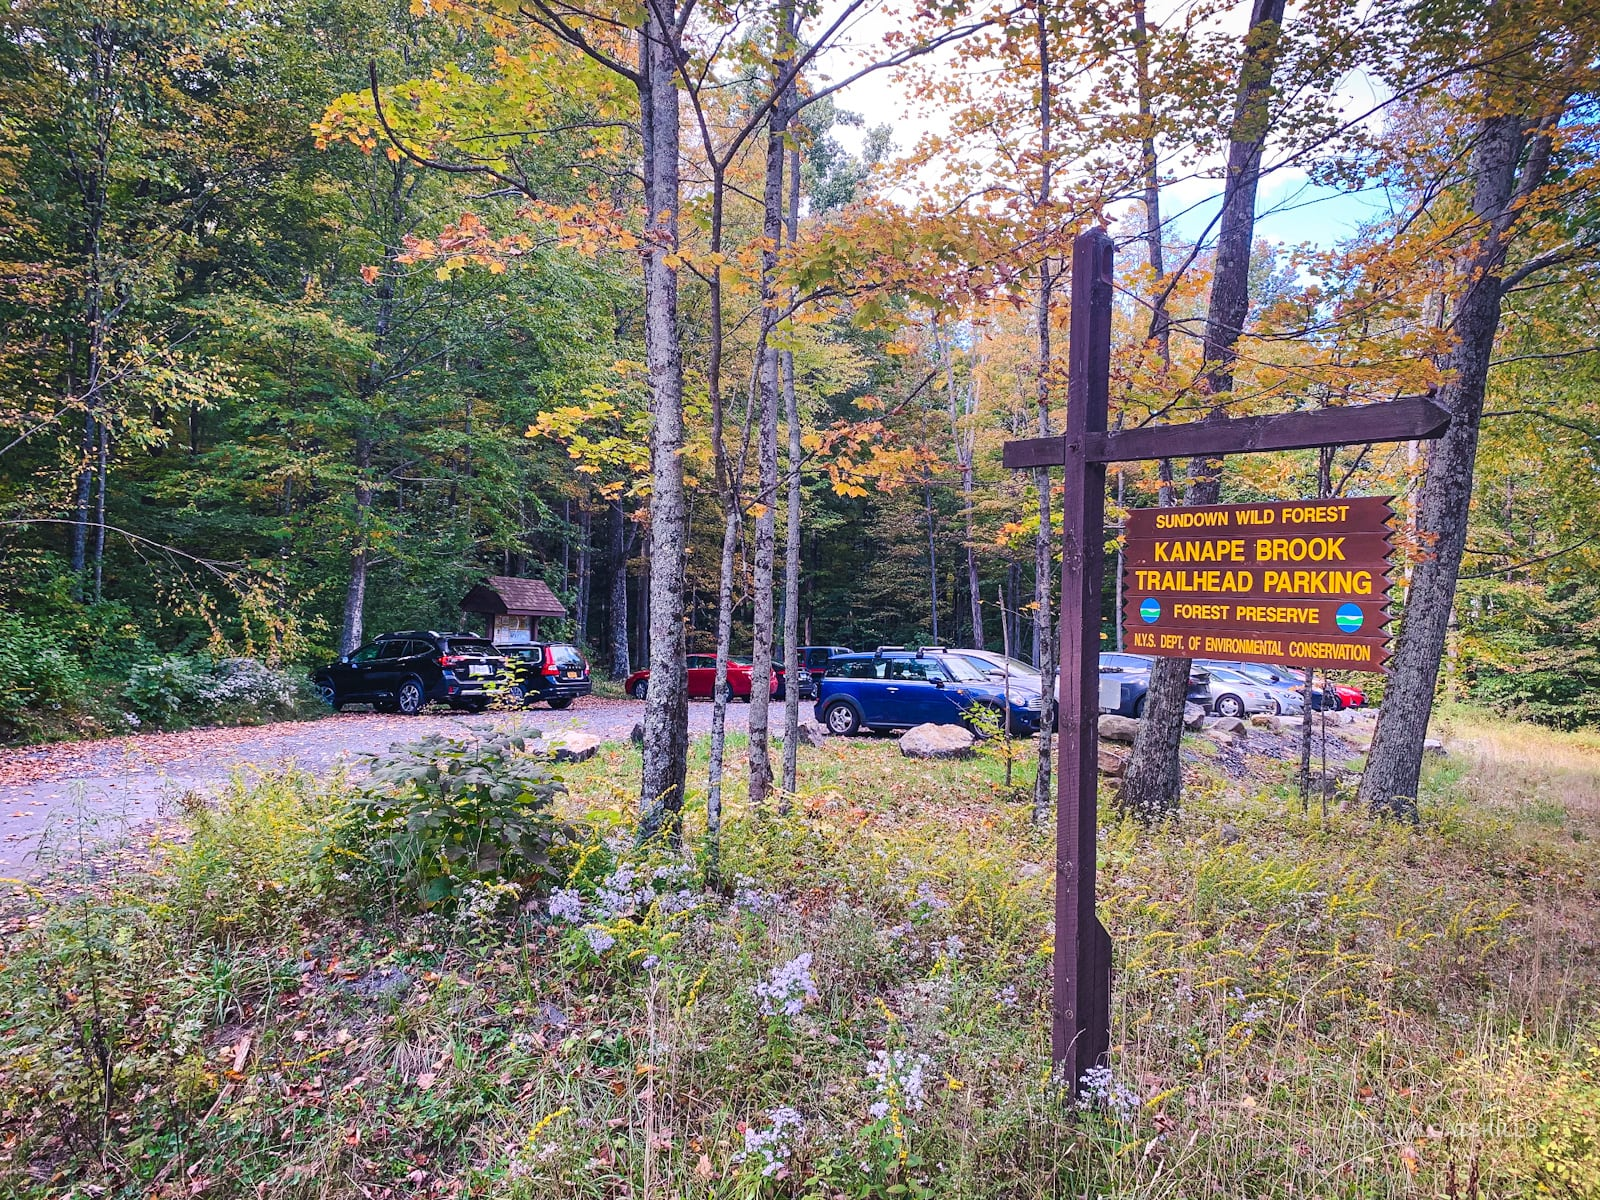 ashokan high point parking area and signage